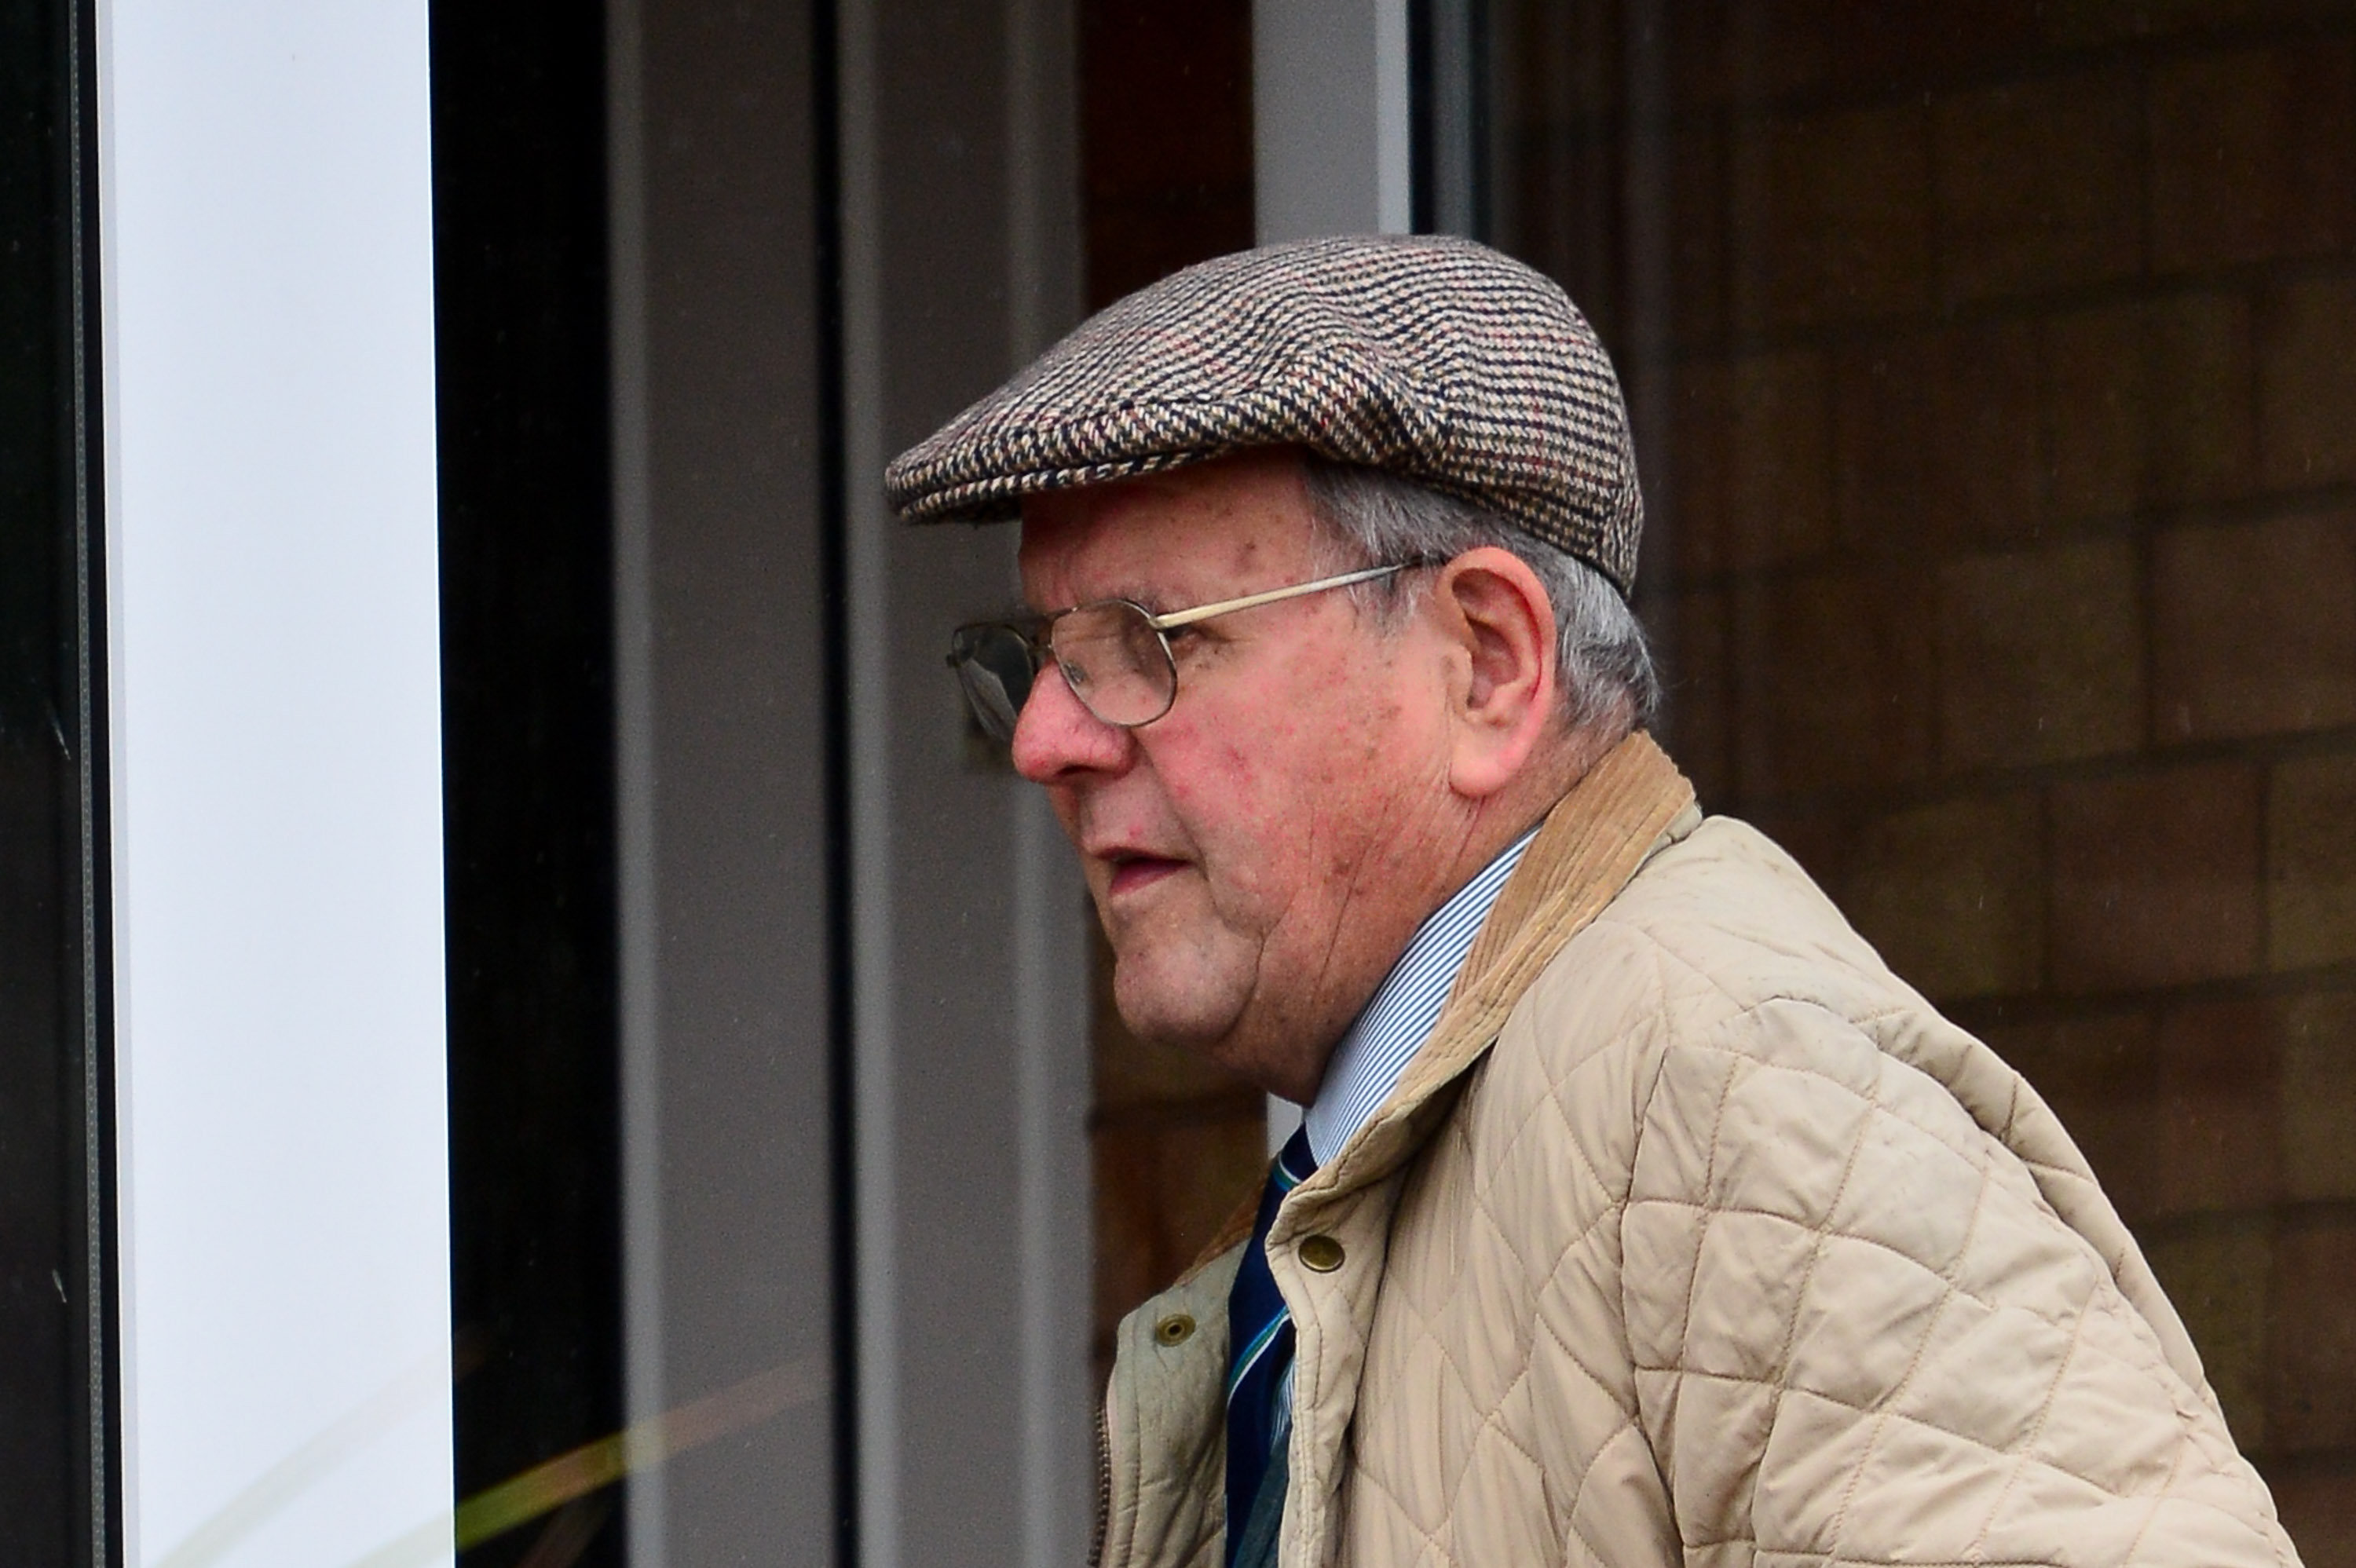 David Venables, now 86, gave no comment on reports the human remains at his former home are those of his wife (Picture: SWNS)